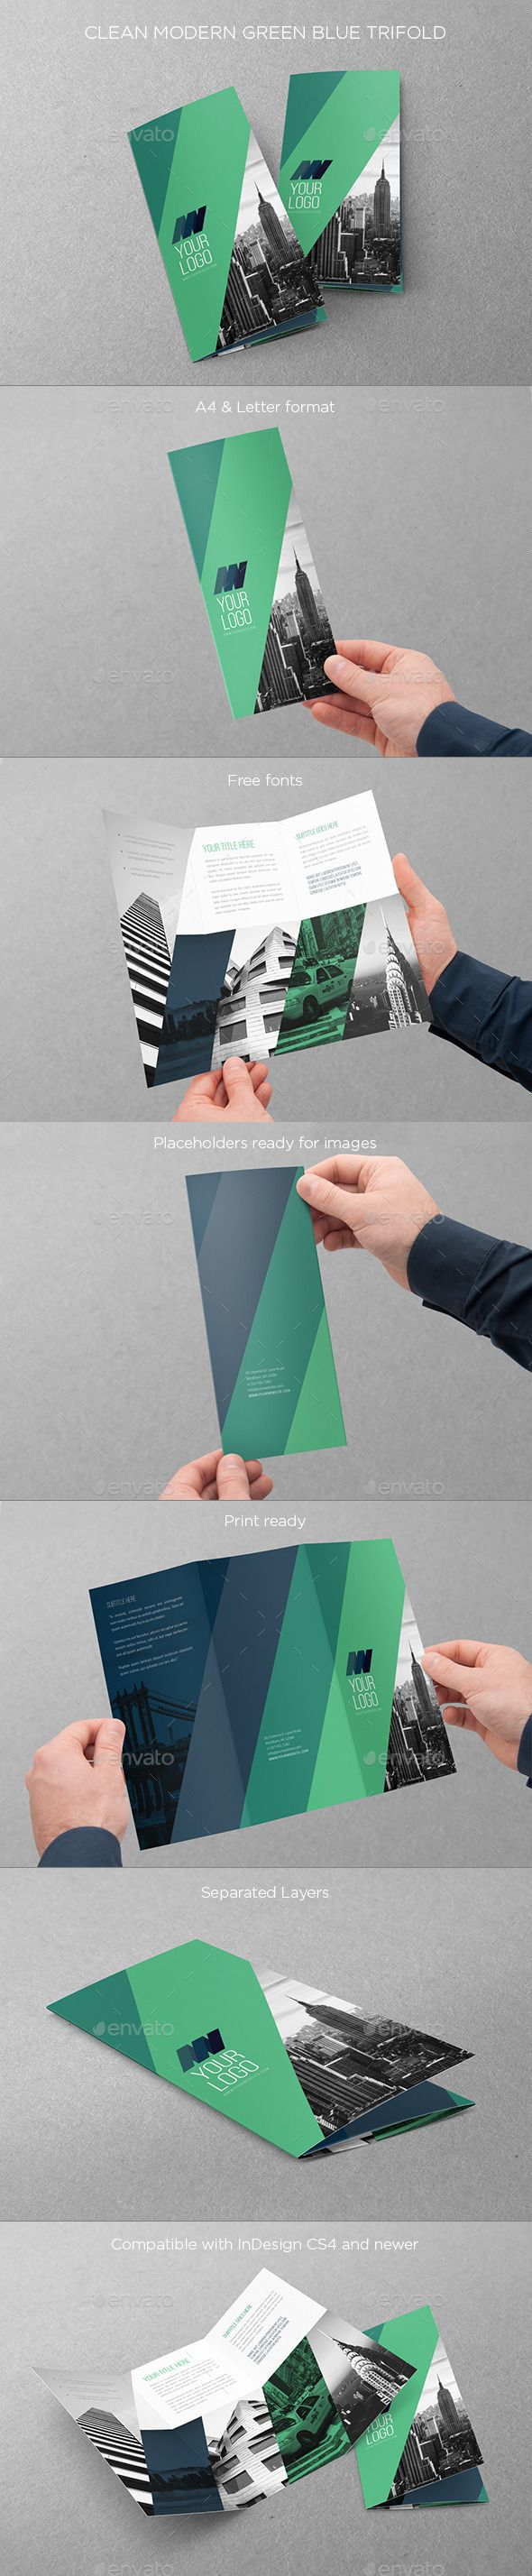 Clean Modern Green Blue Trifold — InDesign INDD #cool #green • Available here → https://graphicriver.net/item/clean-modern-green-blue-trifold/11225278?ref=pxcr